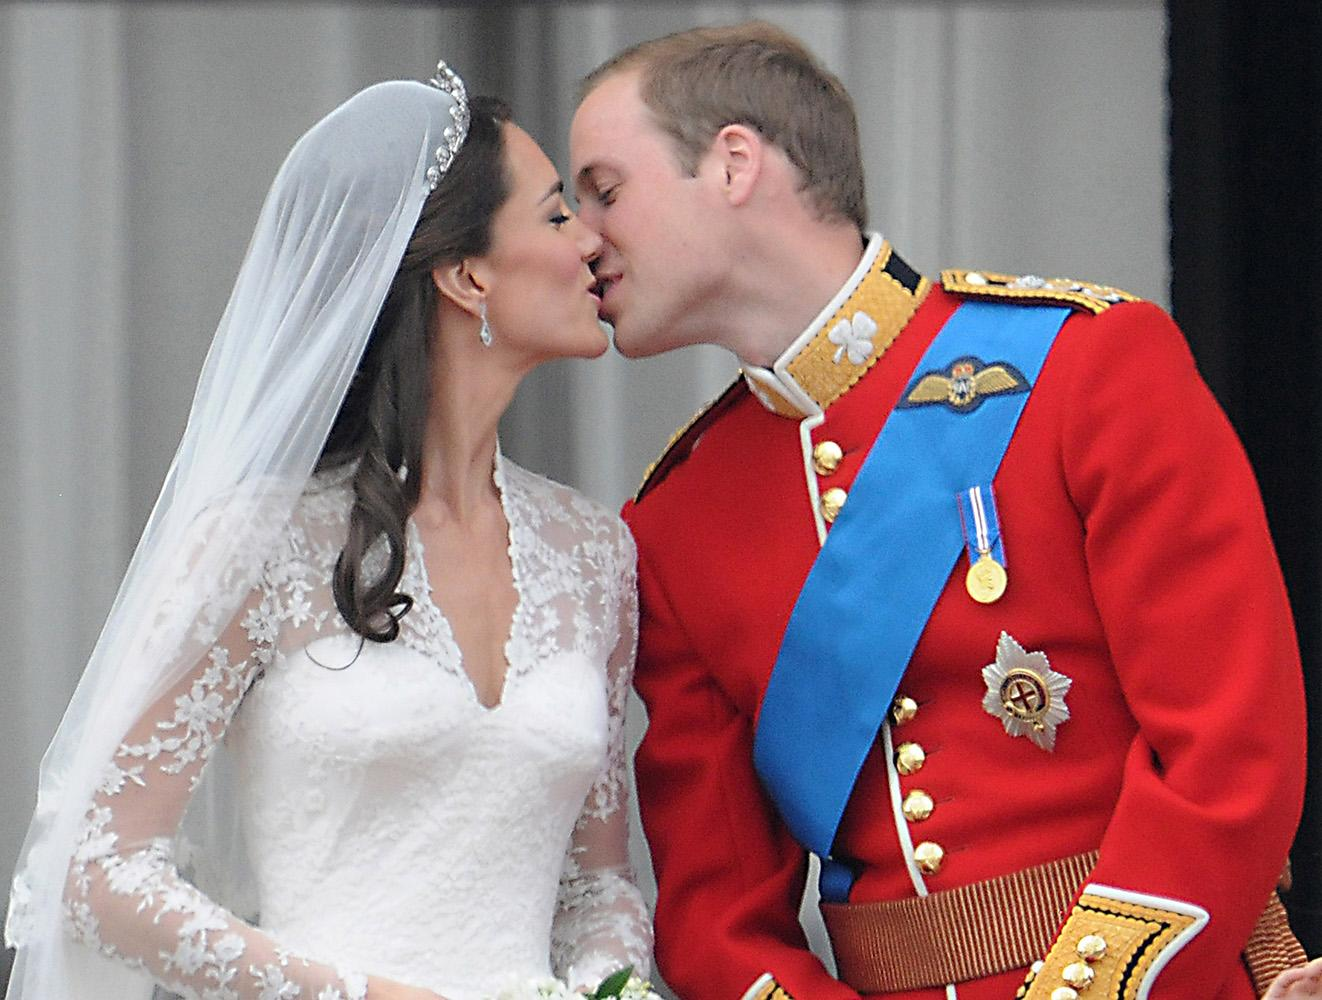 The new Duke and Duchess of Cambridge kiss on the balcony of Buckingham Palace to cheers from the crowd.